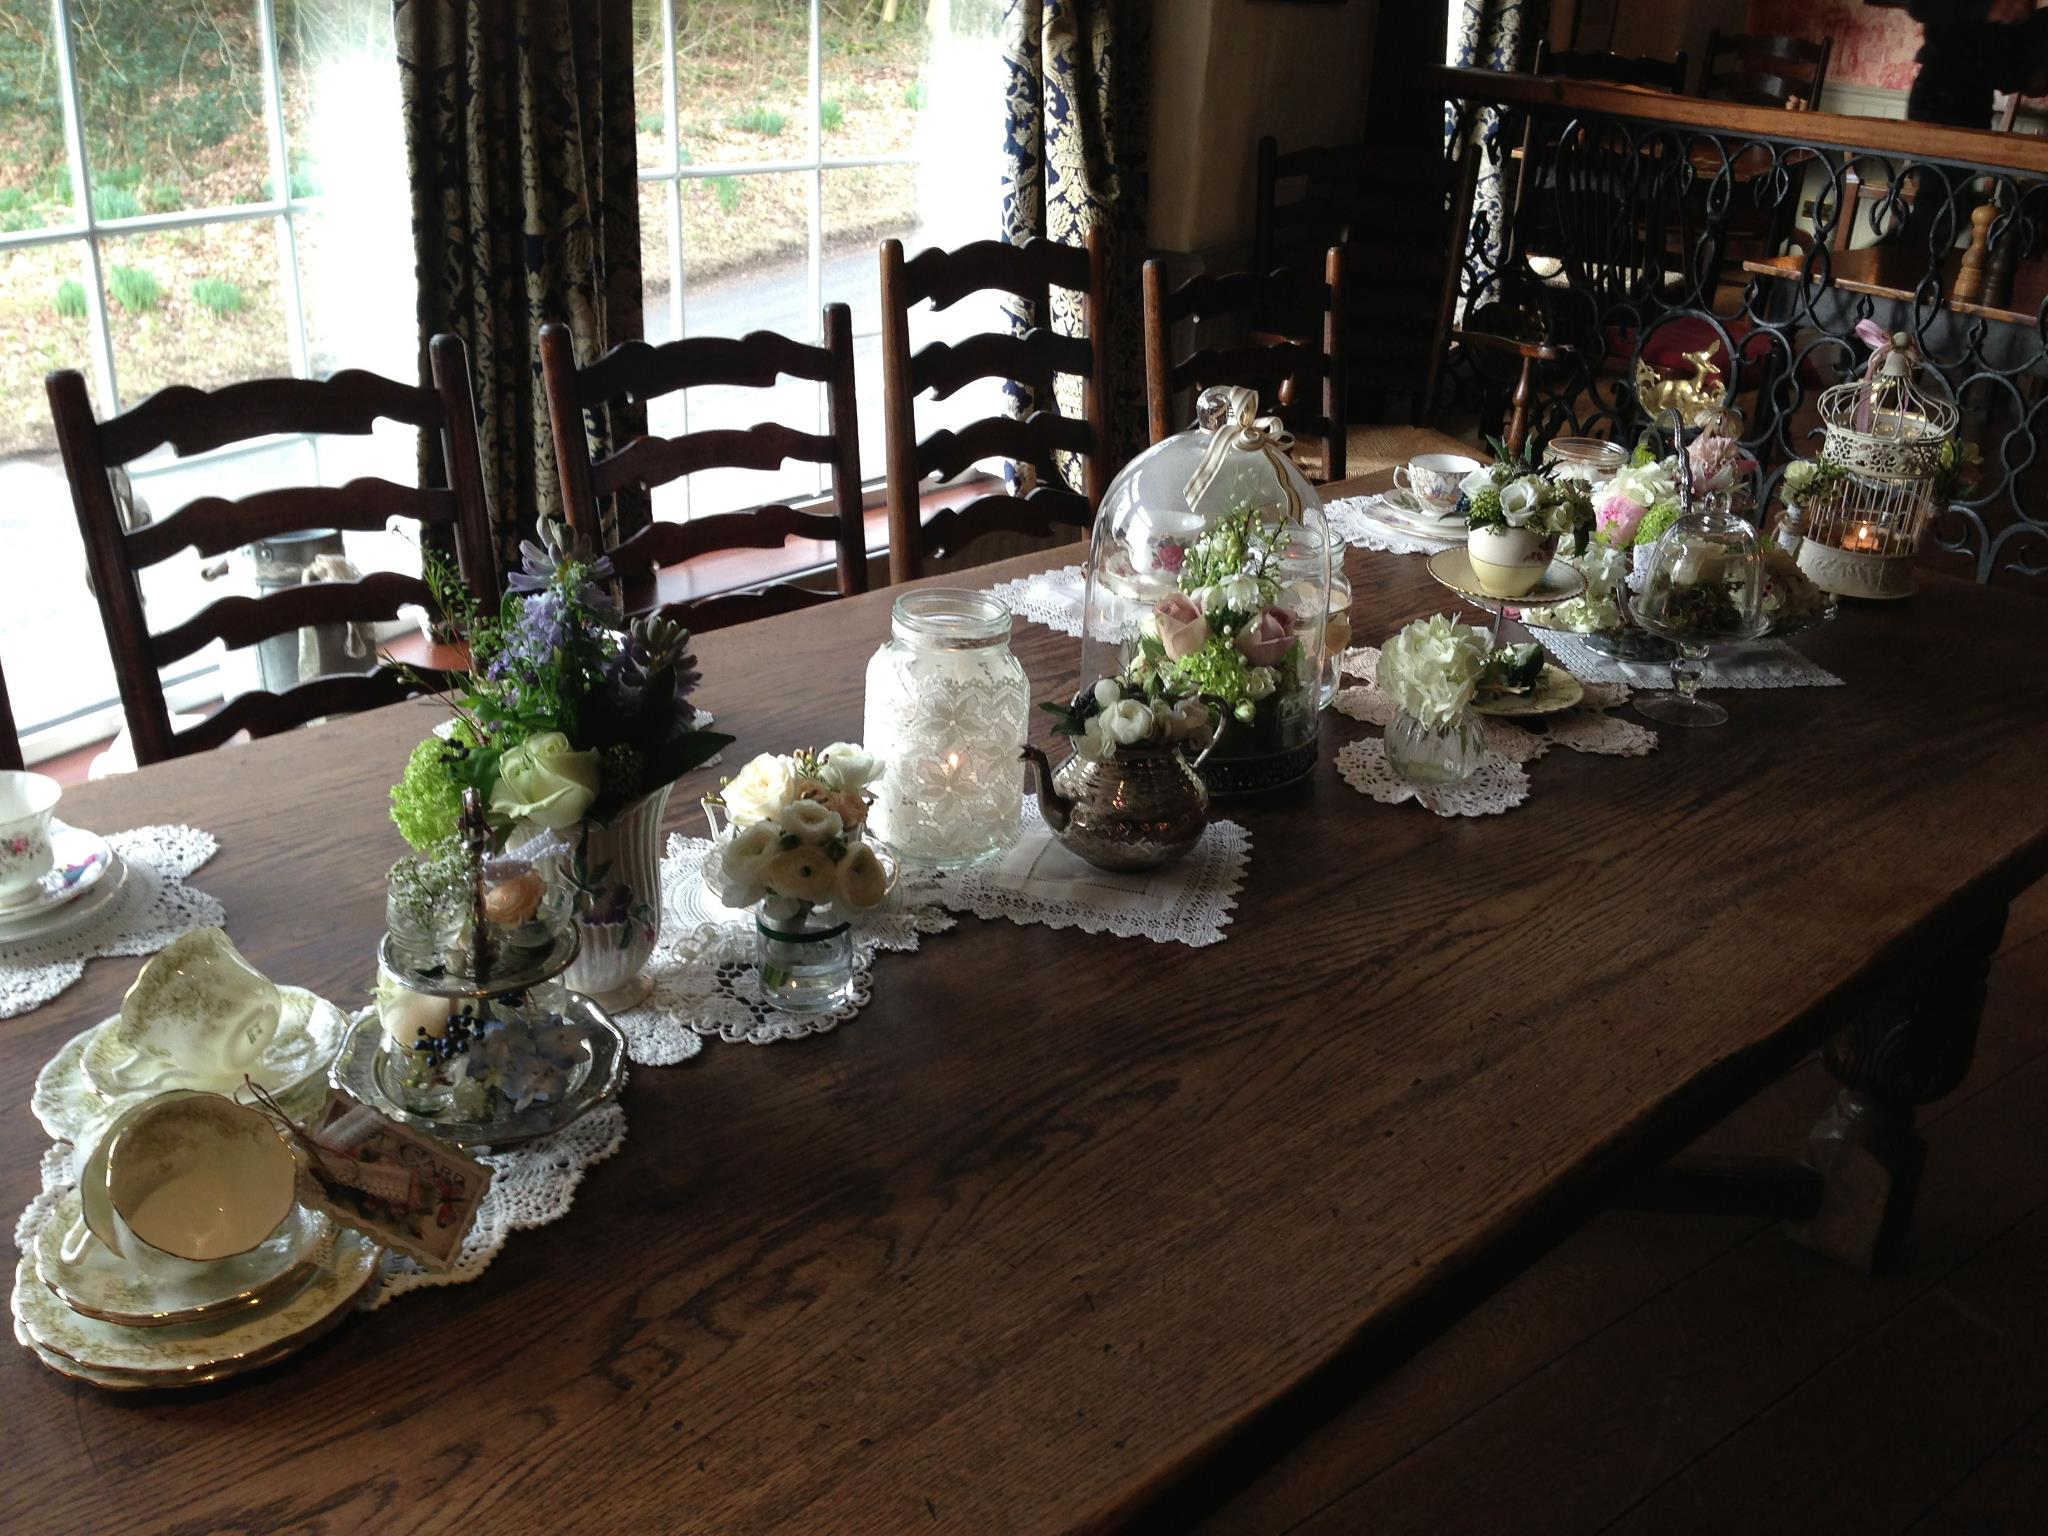 Flower Design with Vintage Crockery